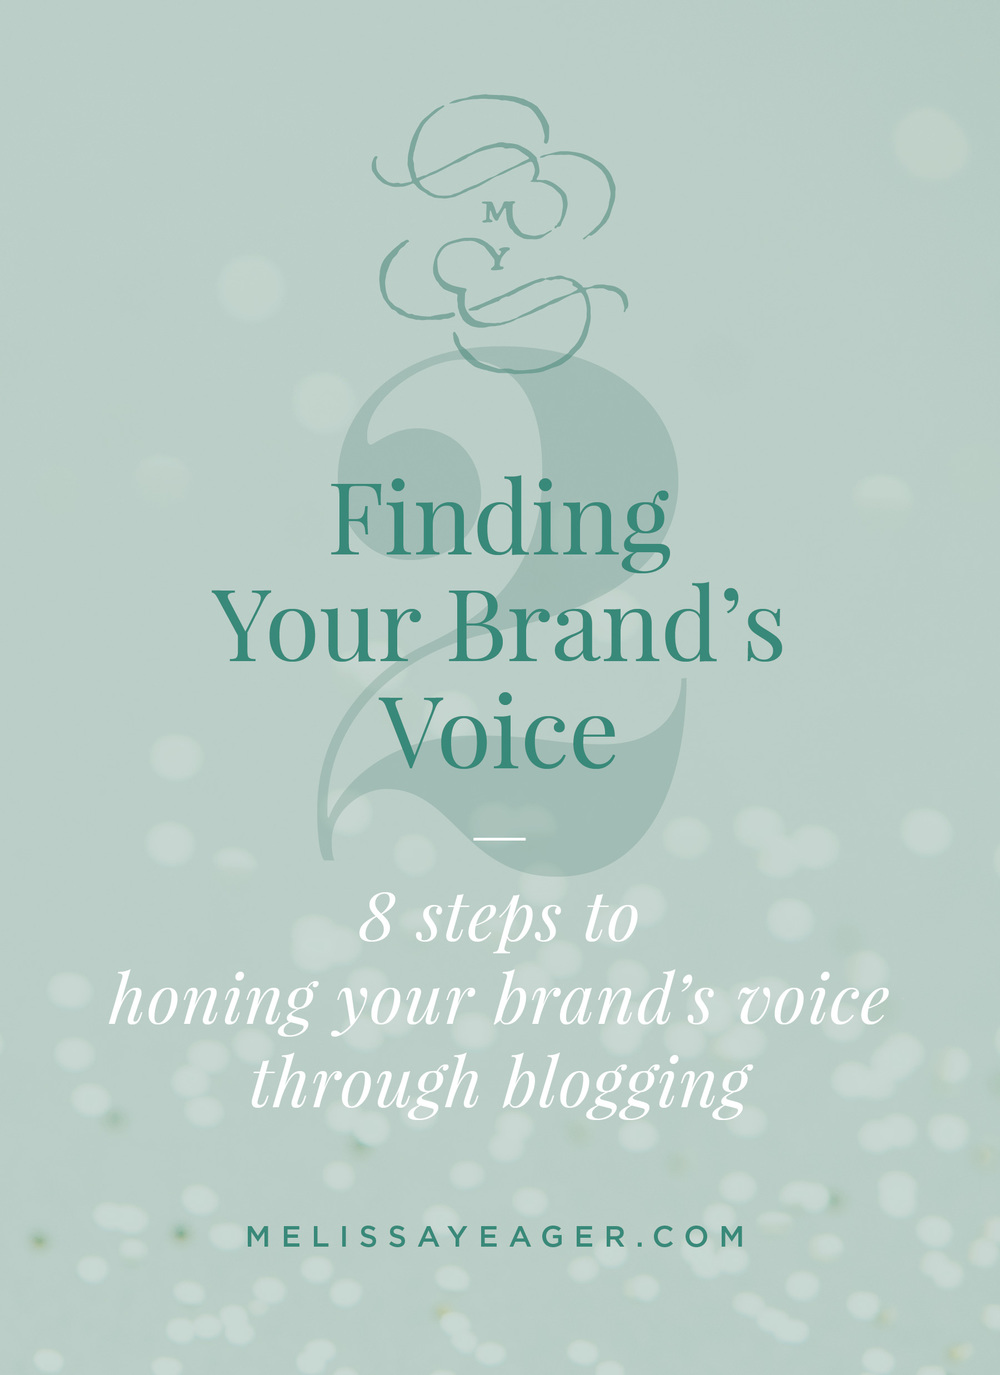 Finding Your Brand's Voice: Part 2 - 8 steps to honing your brand's voice through blogging